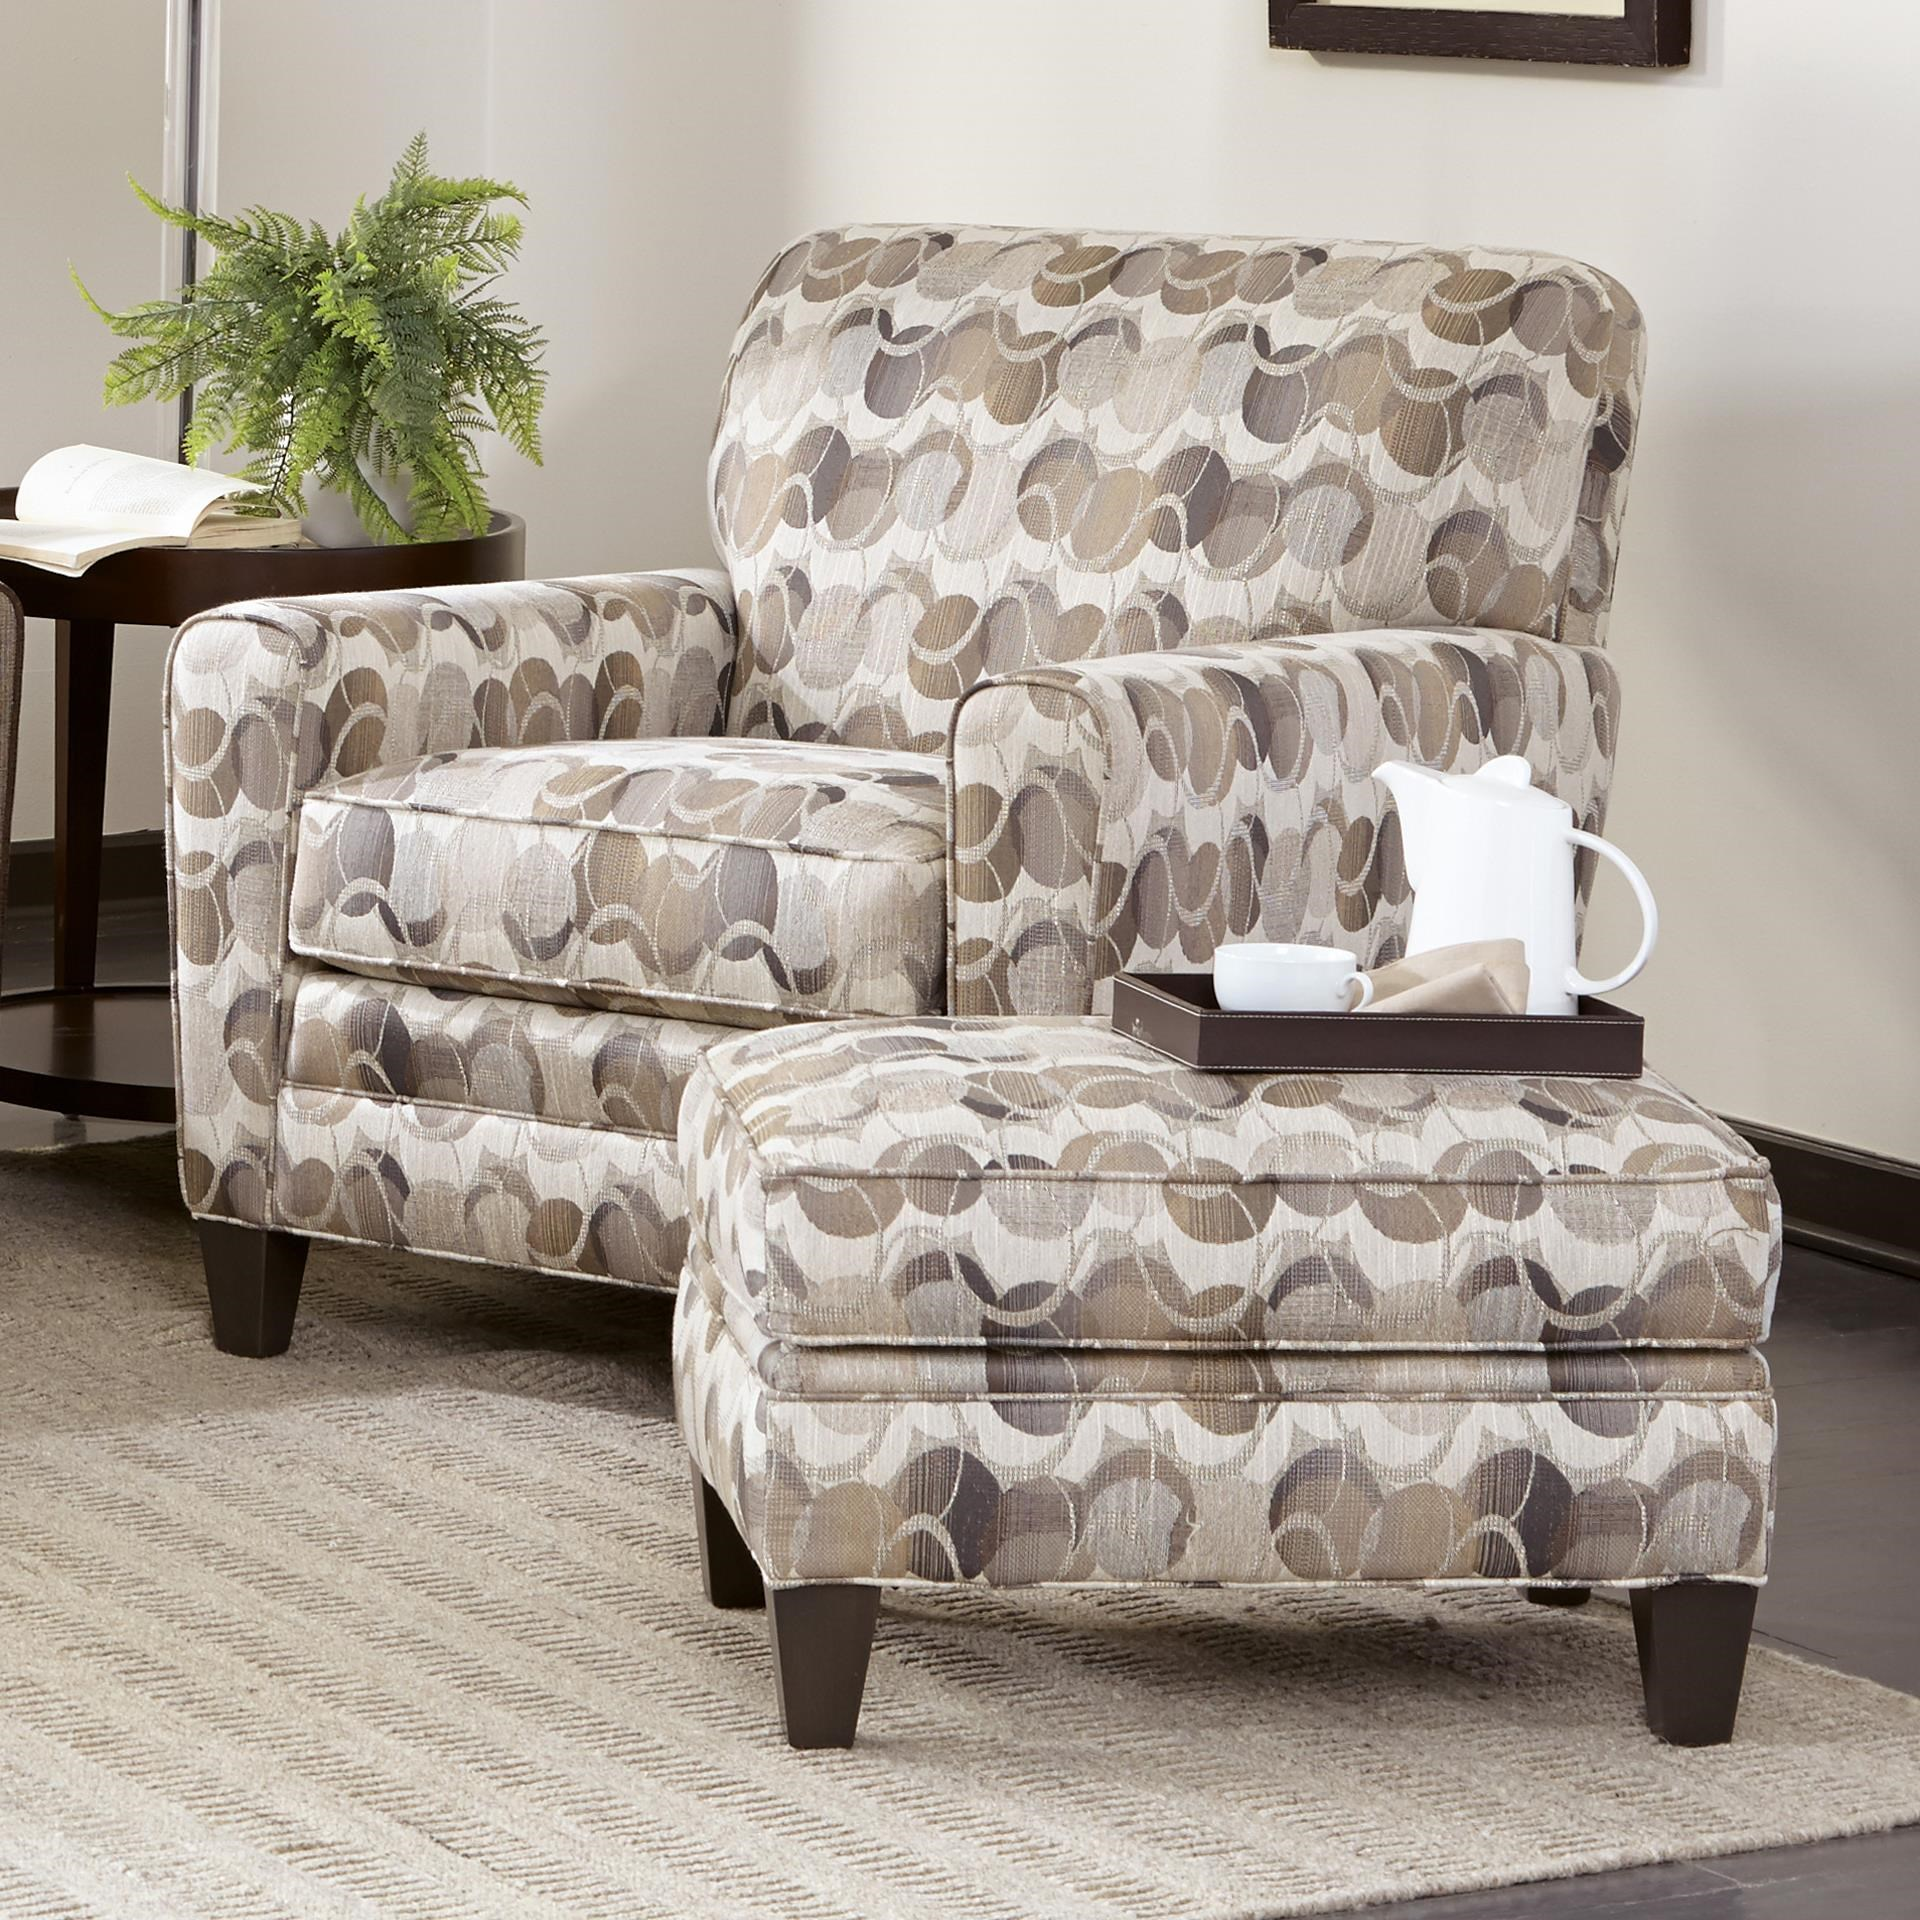 Chair with Tapered Track Arms and Ottoman Set